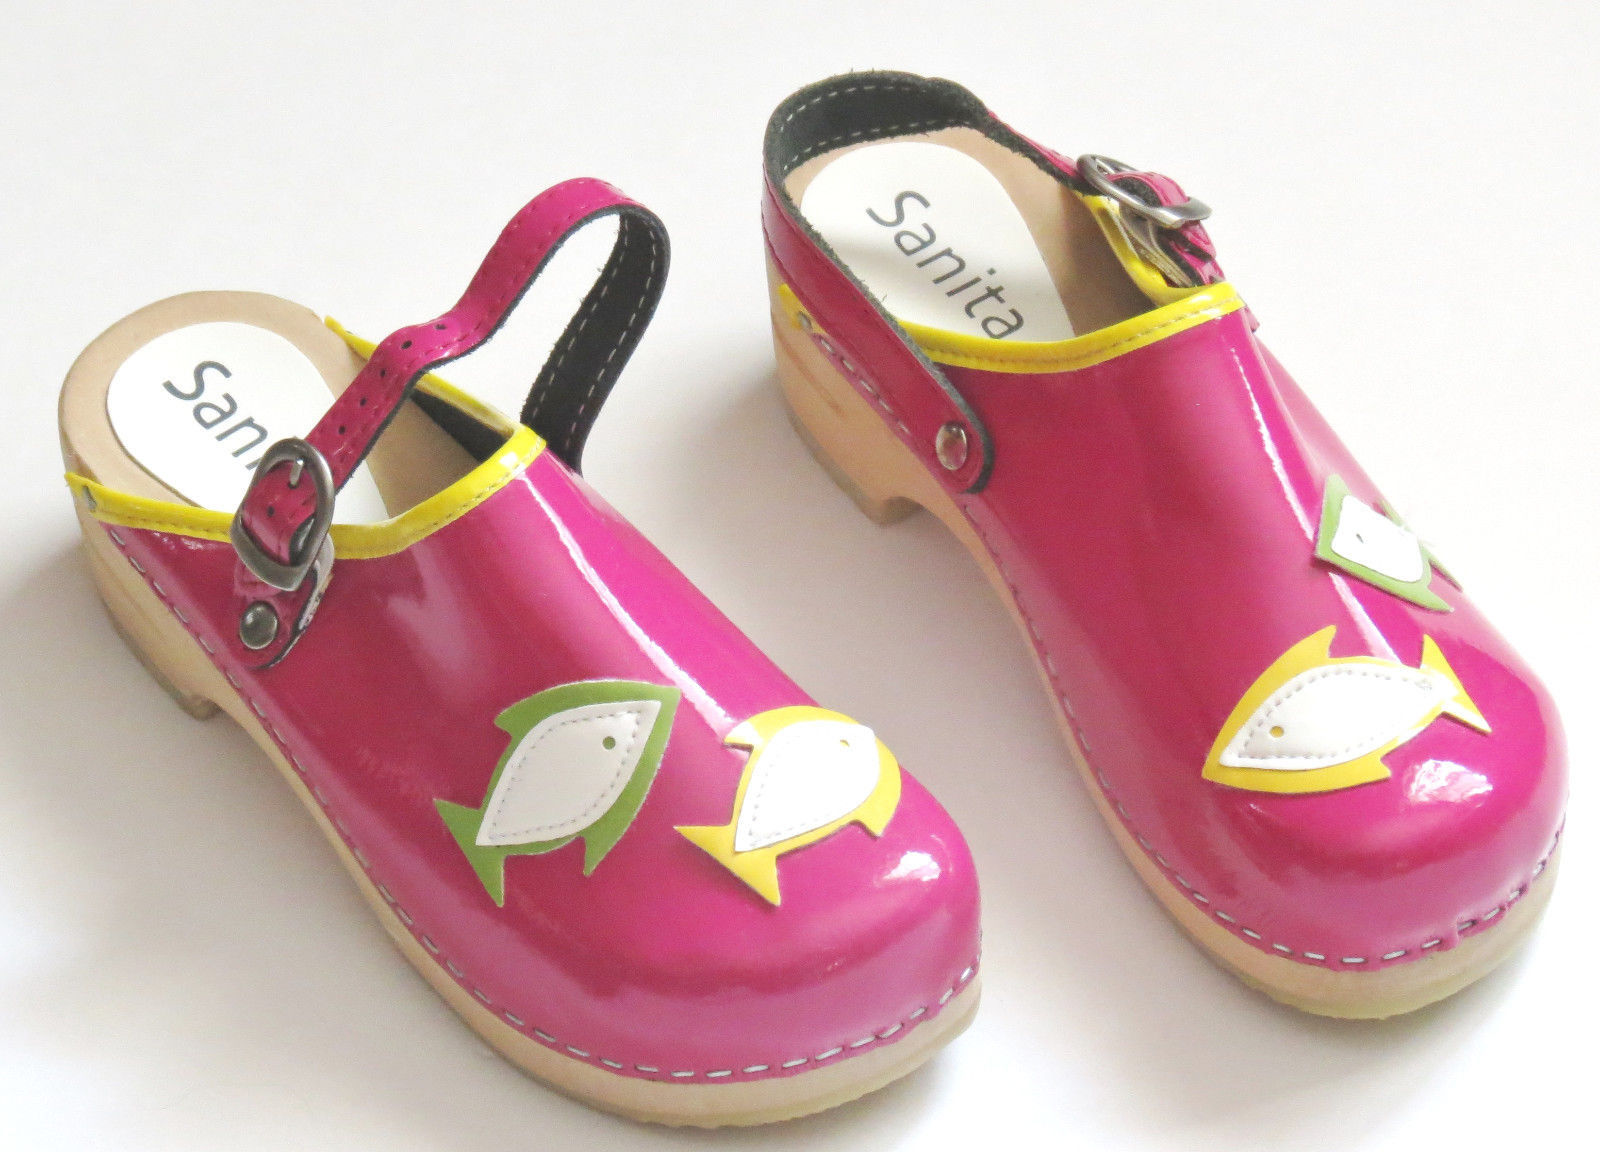 Primary image for Sanita Girls Clogs 34 Pink Pisces Fish Patent Leather Stapled Wood 3.5 -4